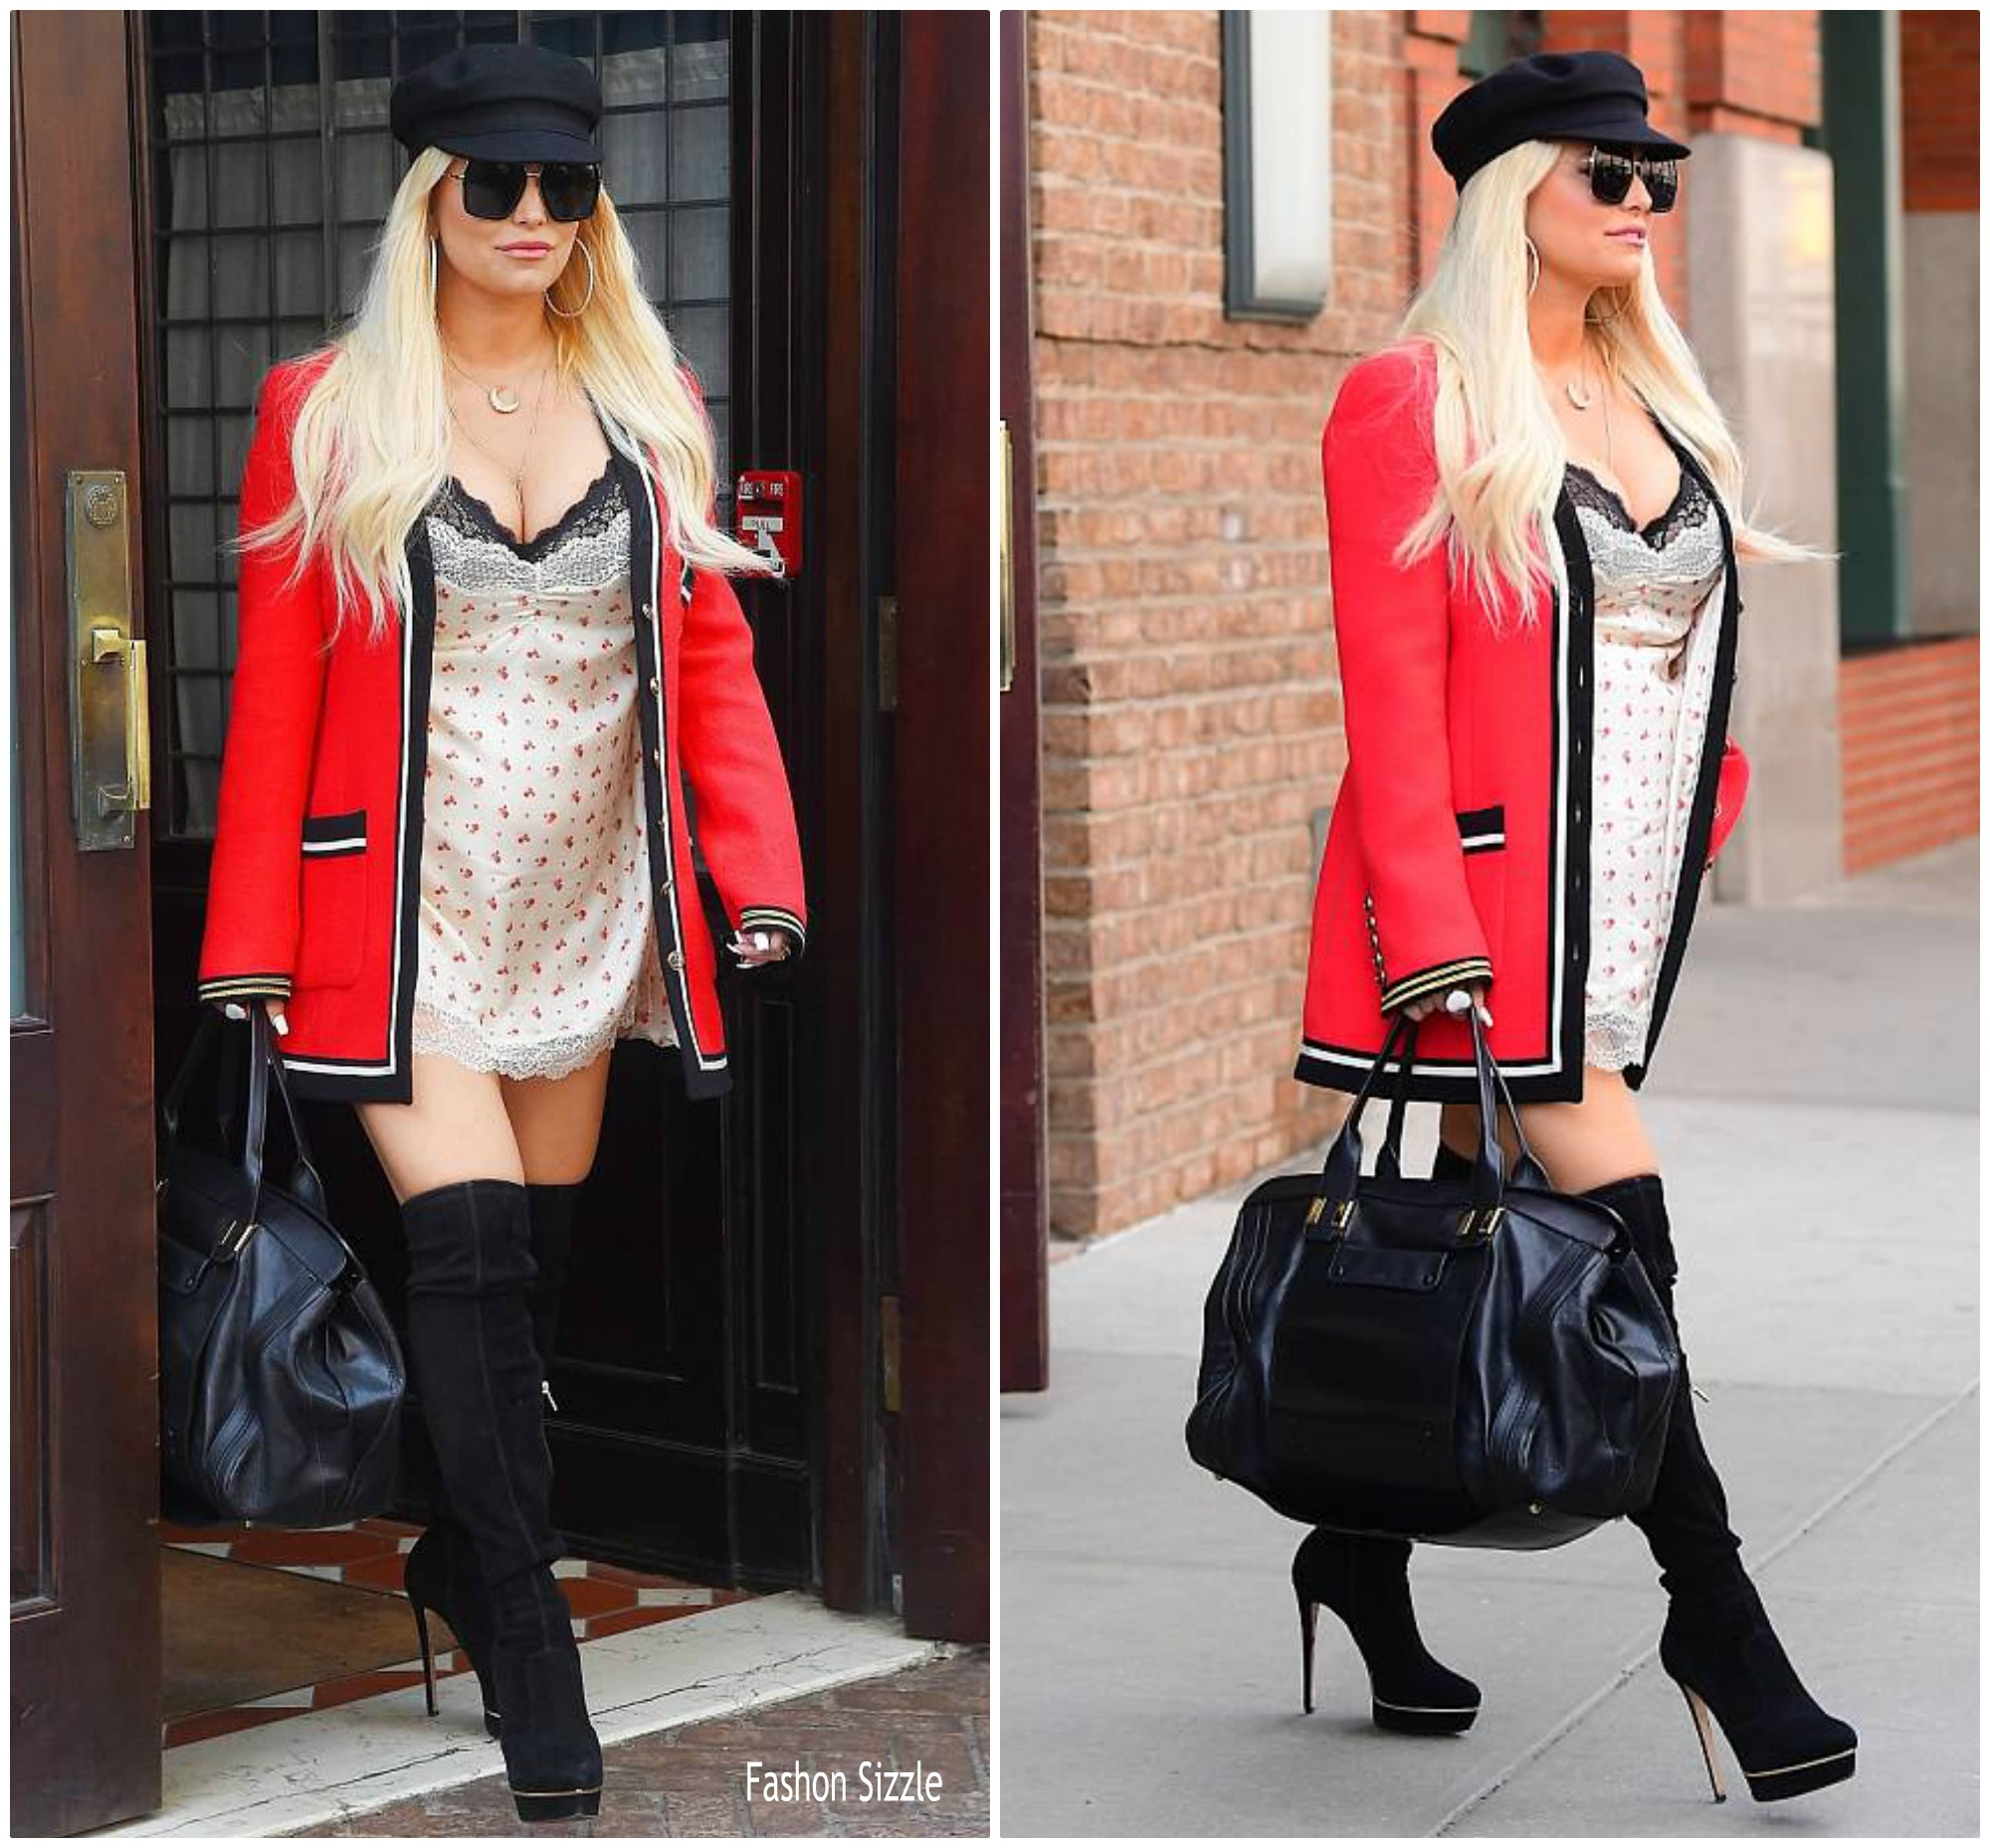 jessica-simpson-in-gucci-out-in-new-york